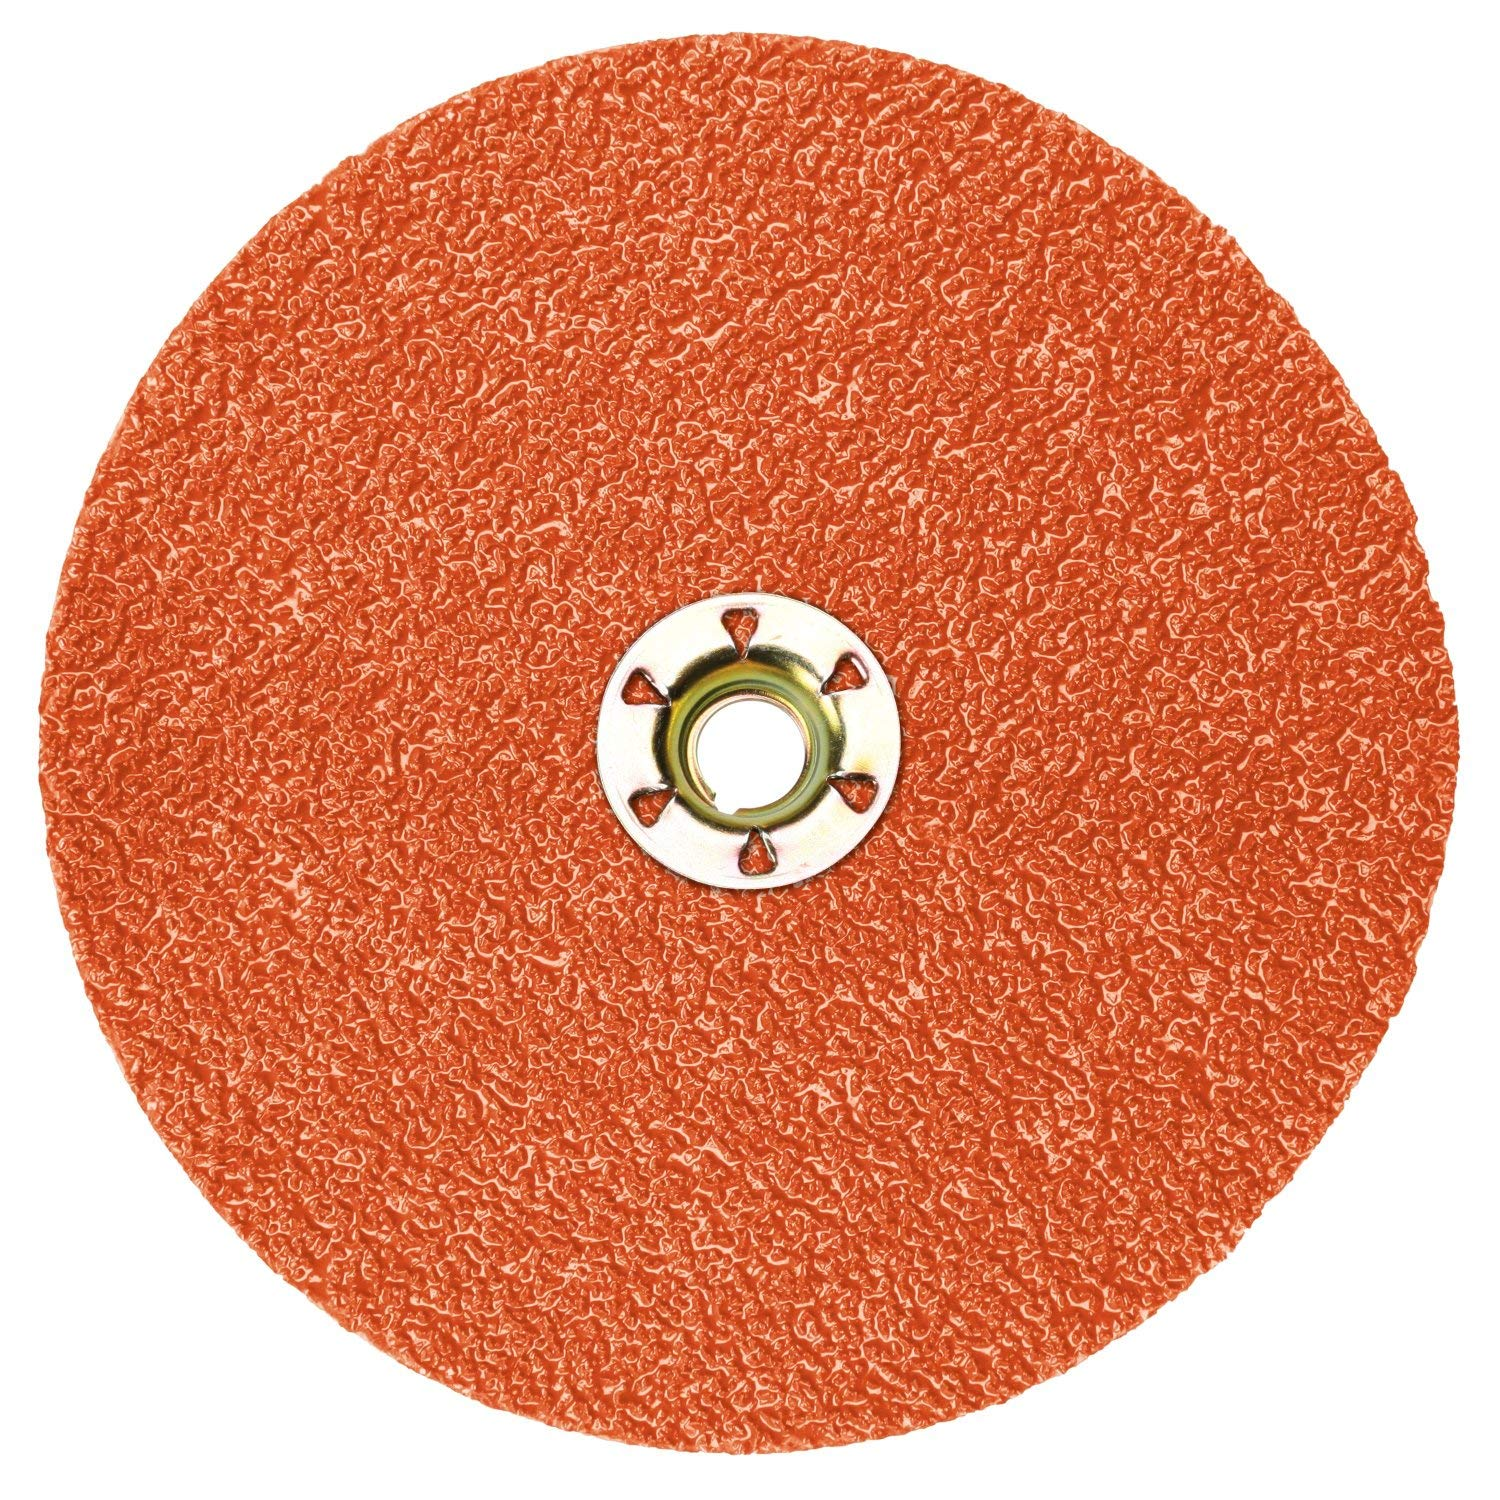 3M Cubitron II Fibre Disc 987C, TN Quick Change, 5 in, 60+ 91jAdLEhjIL._SL1500_